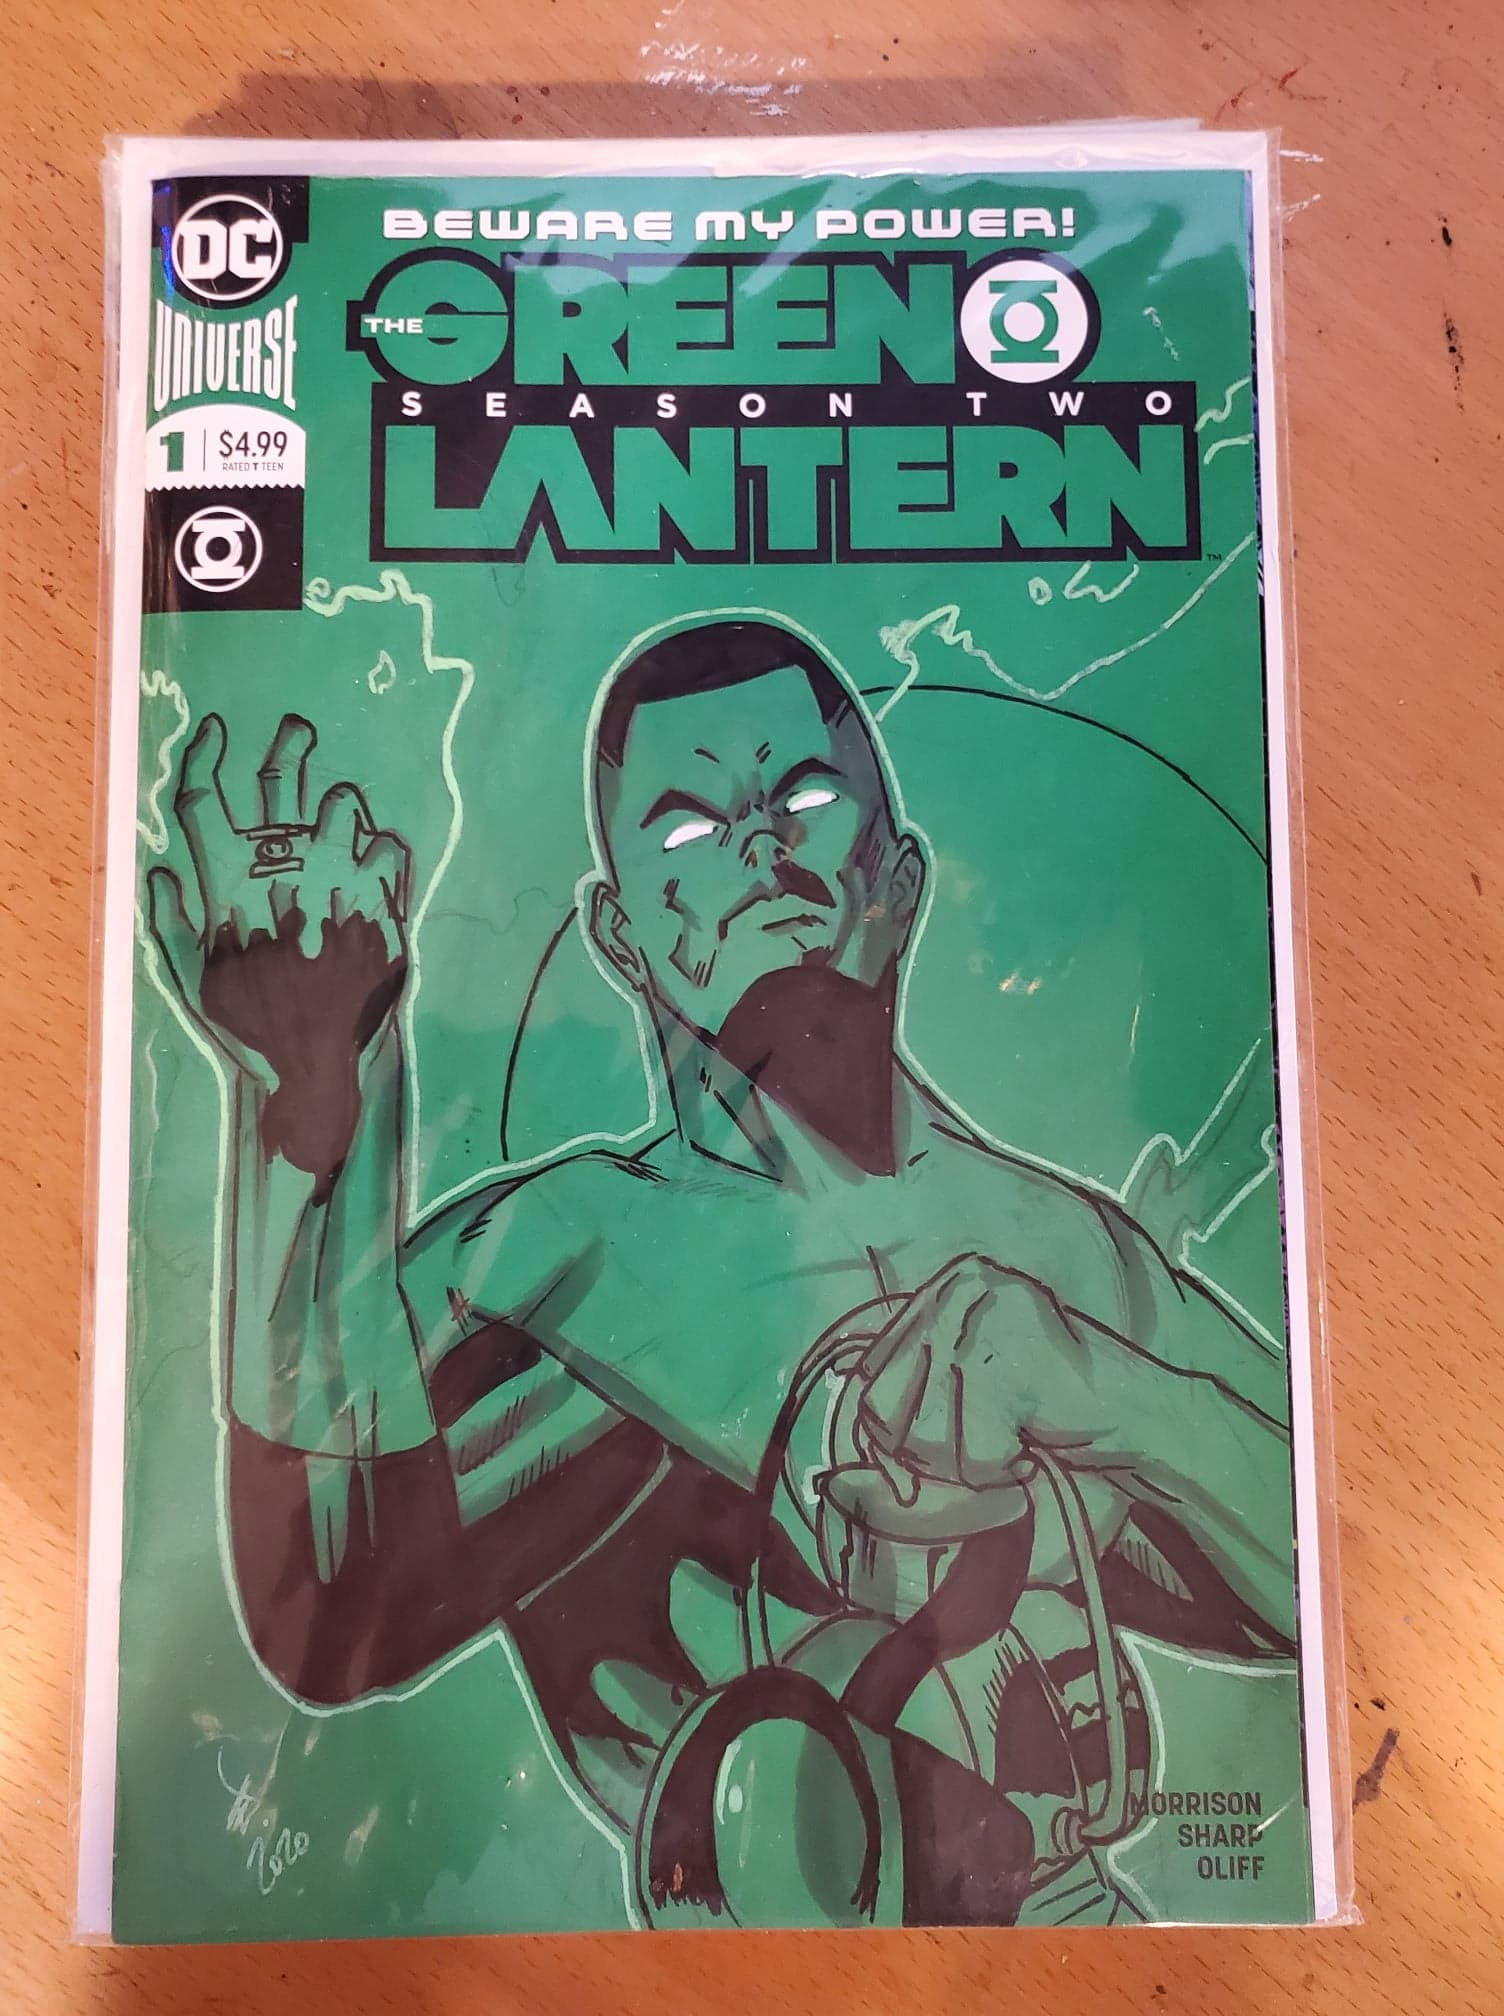 Green Lantern Sketch Cover (John Stewart)